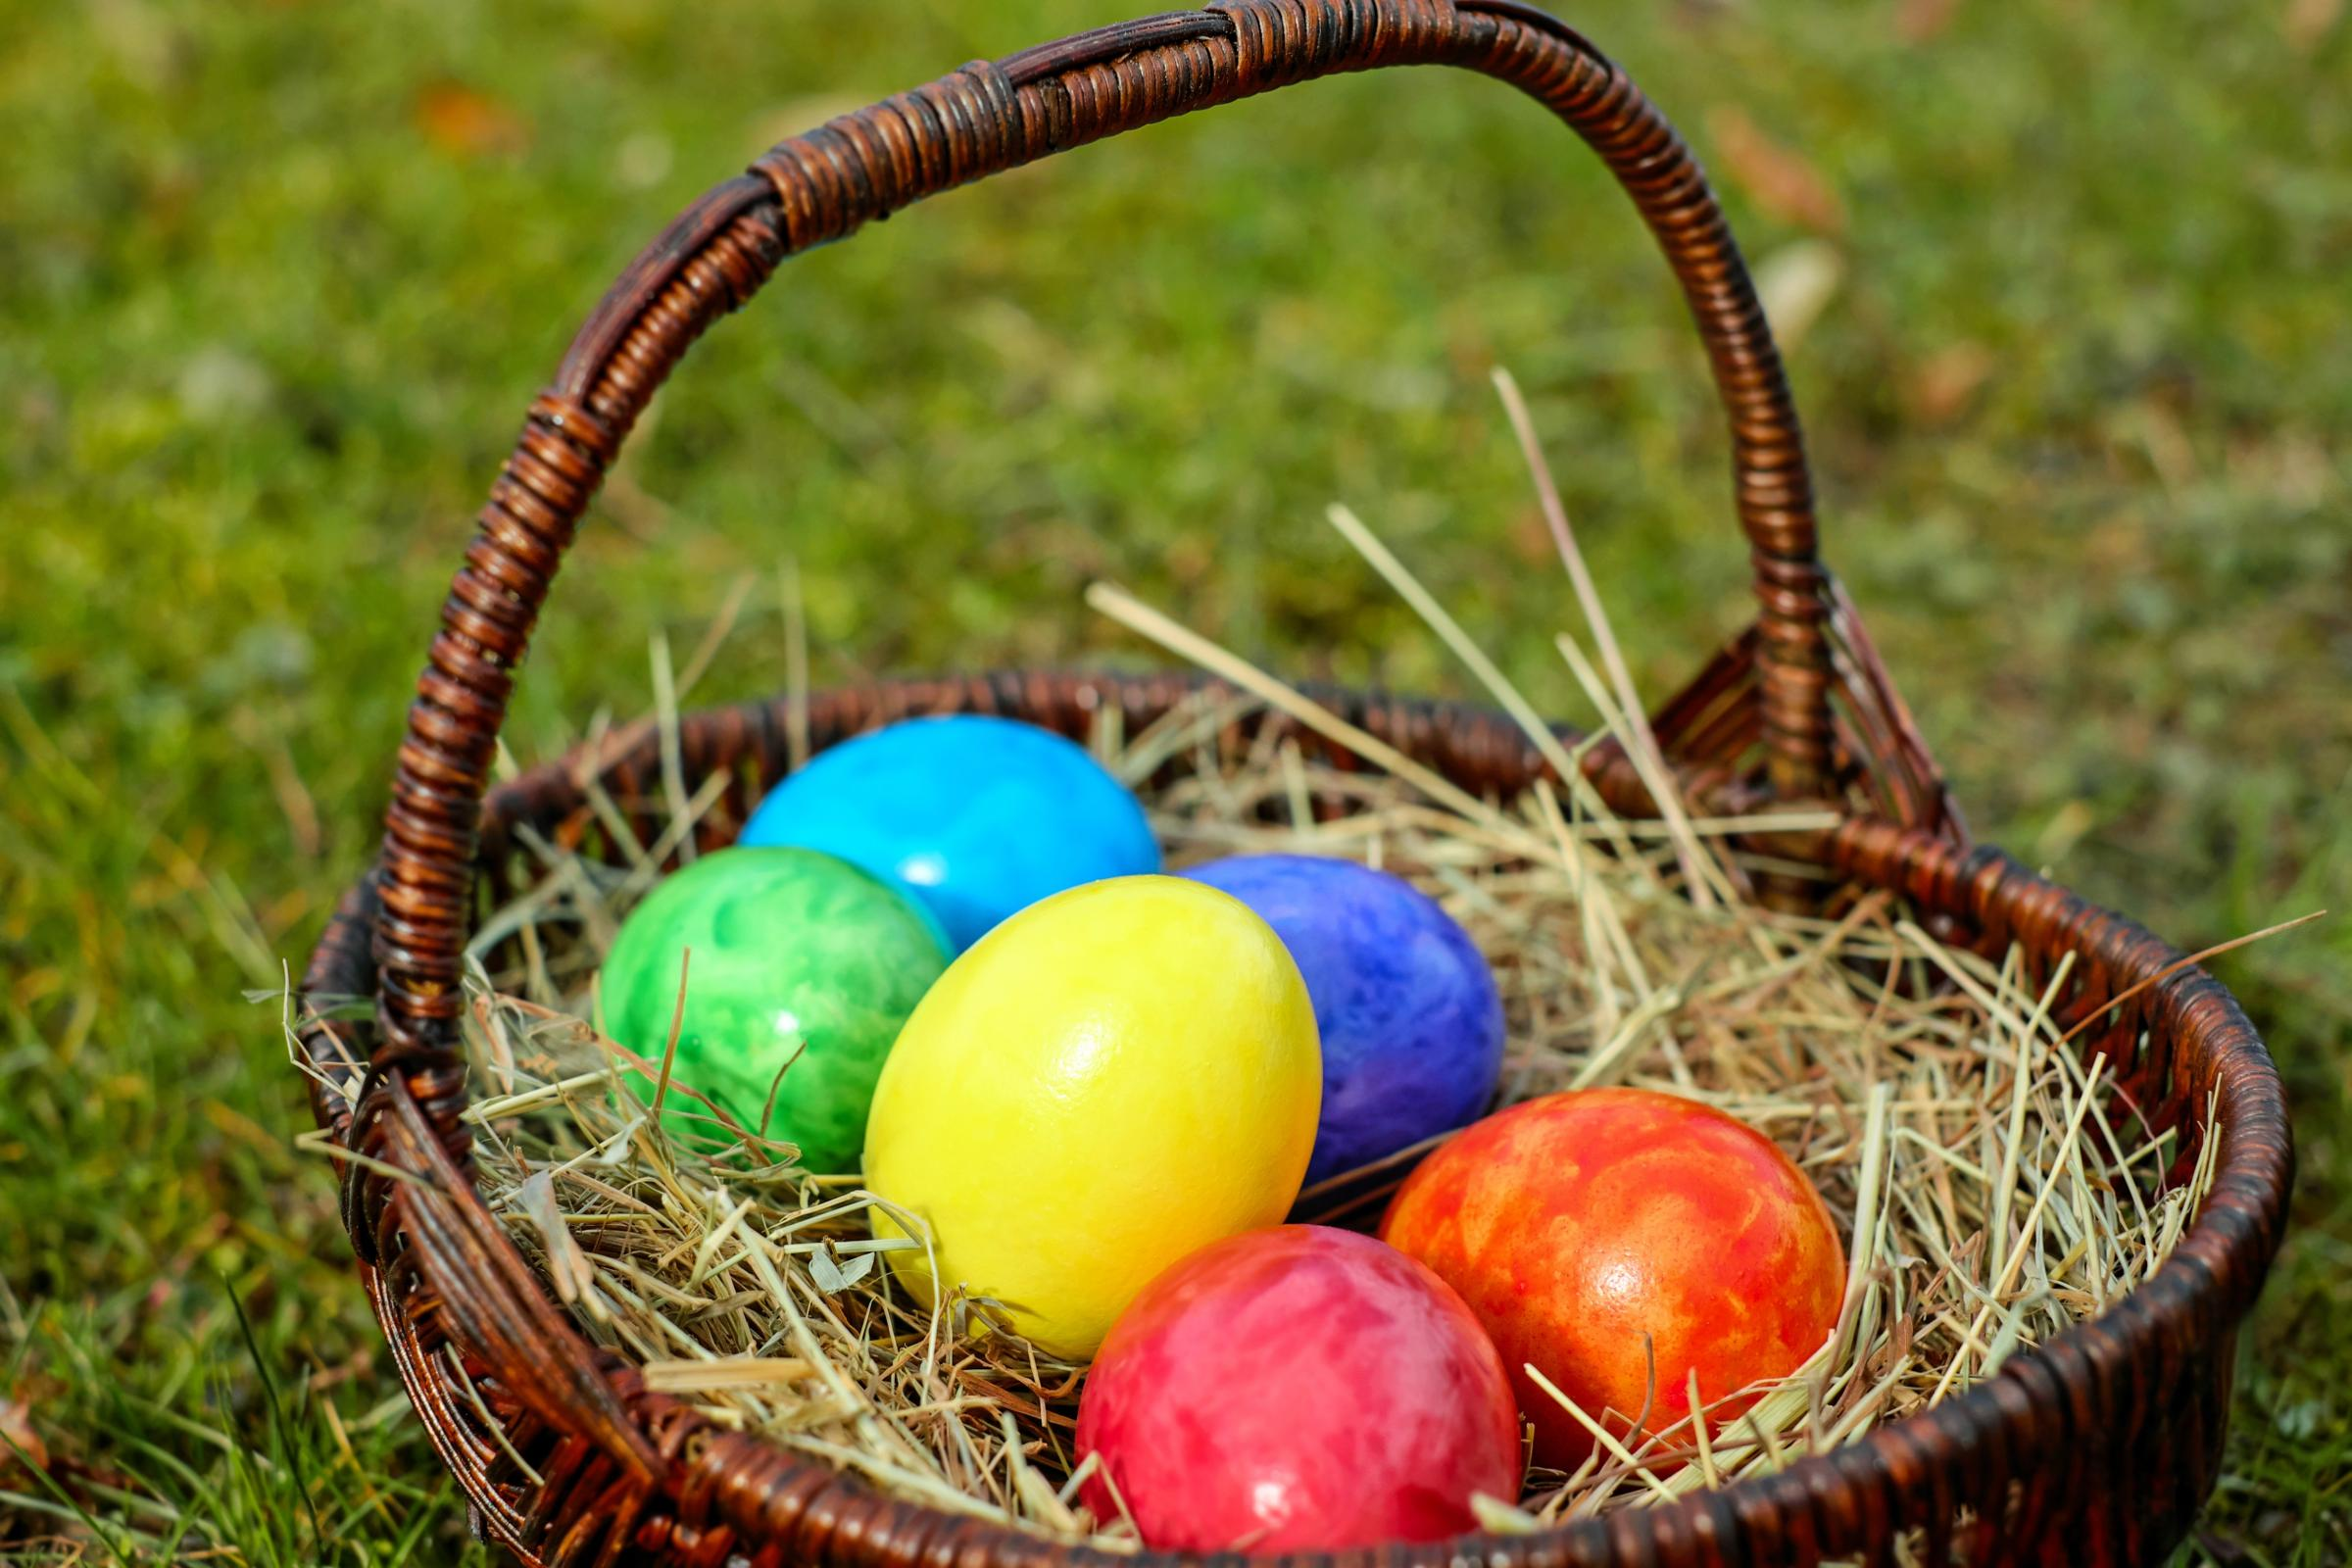 There are plenty of Easter-themed events this weekend